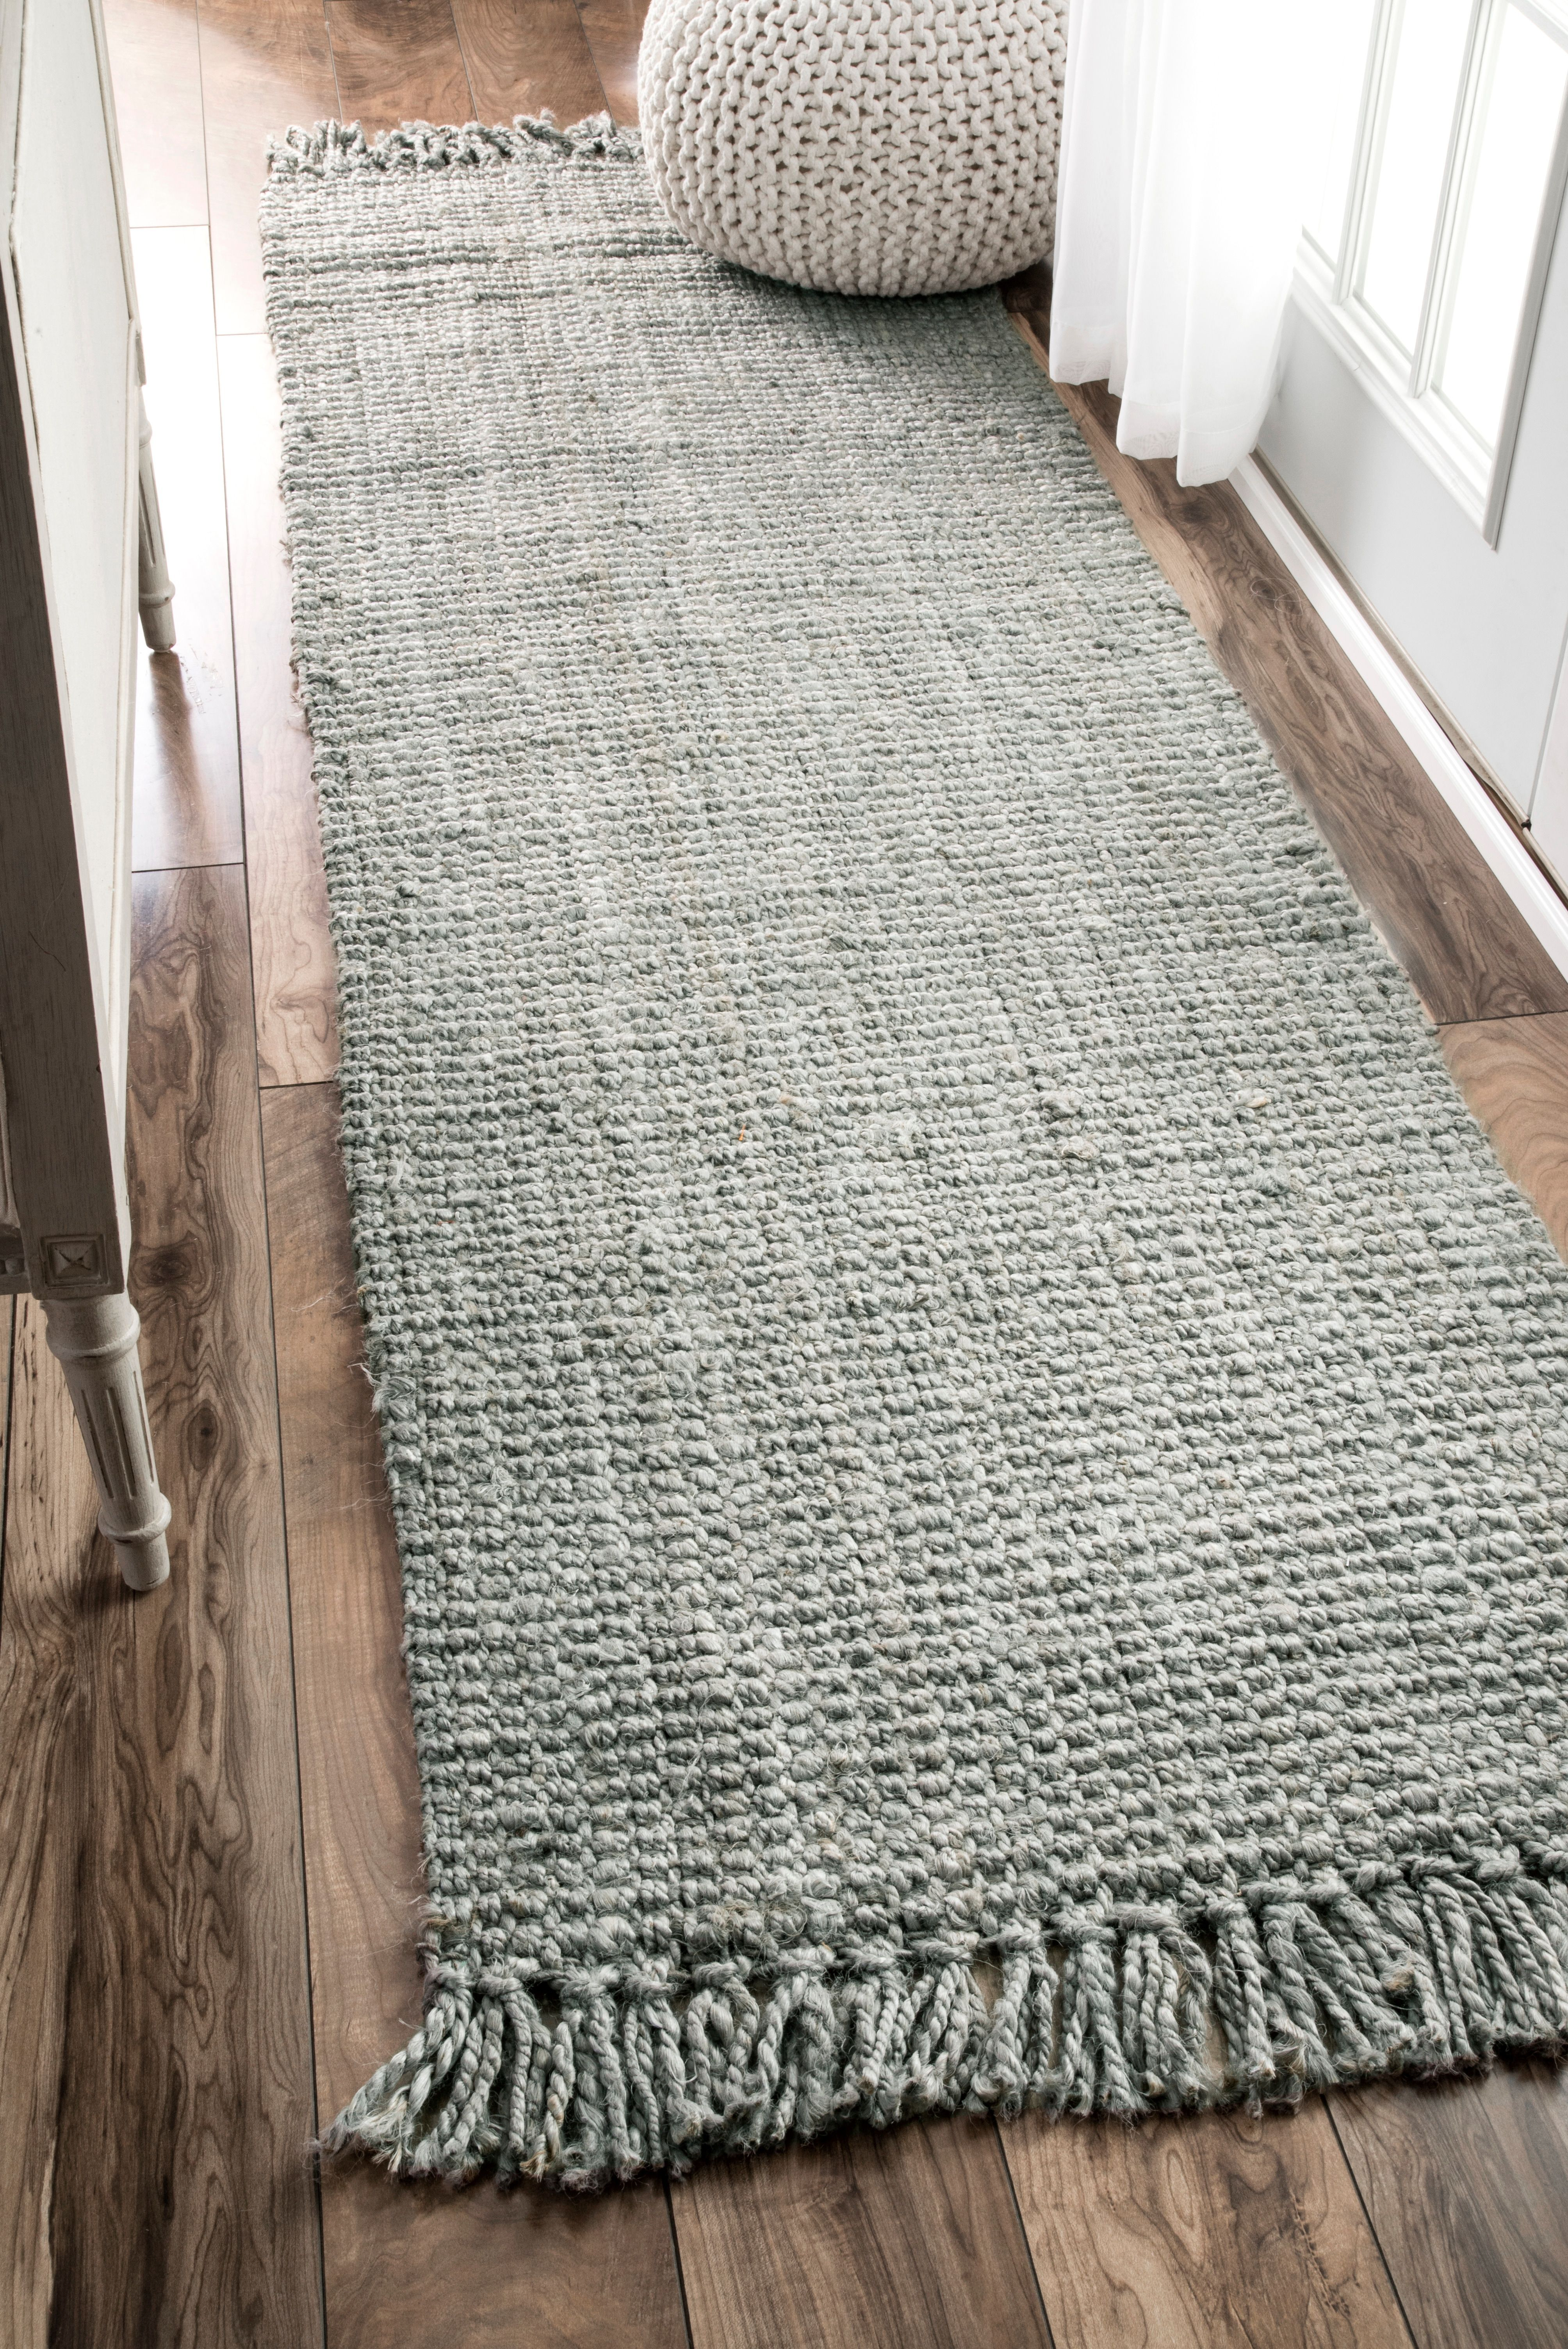 Eco Friendly Organic And Made Of 100 Percent Jute These Rugs Give A Rustic Earthy Feel To Your Surroundings Offered In Farm House Living Room Rugs Usa Rugs